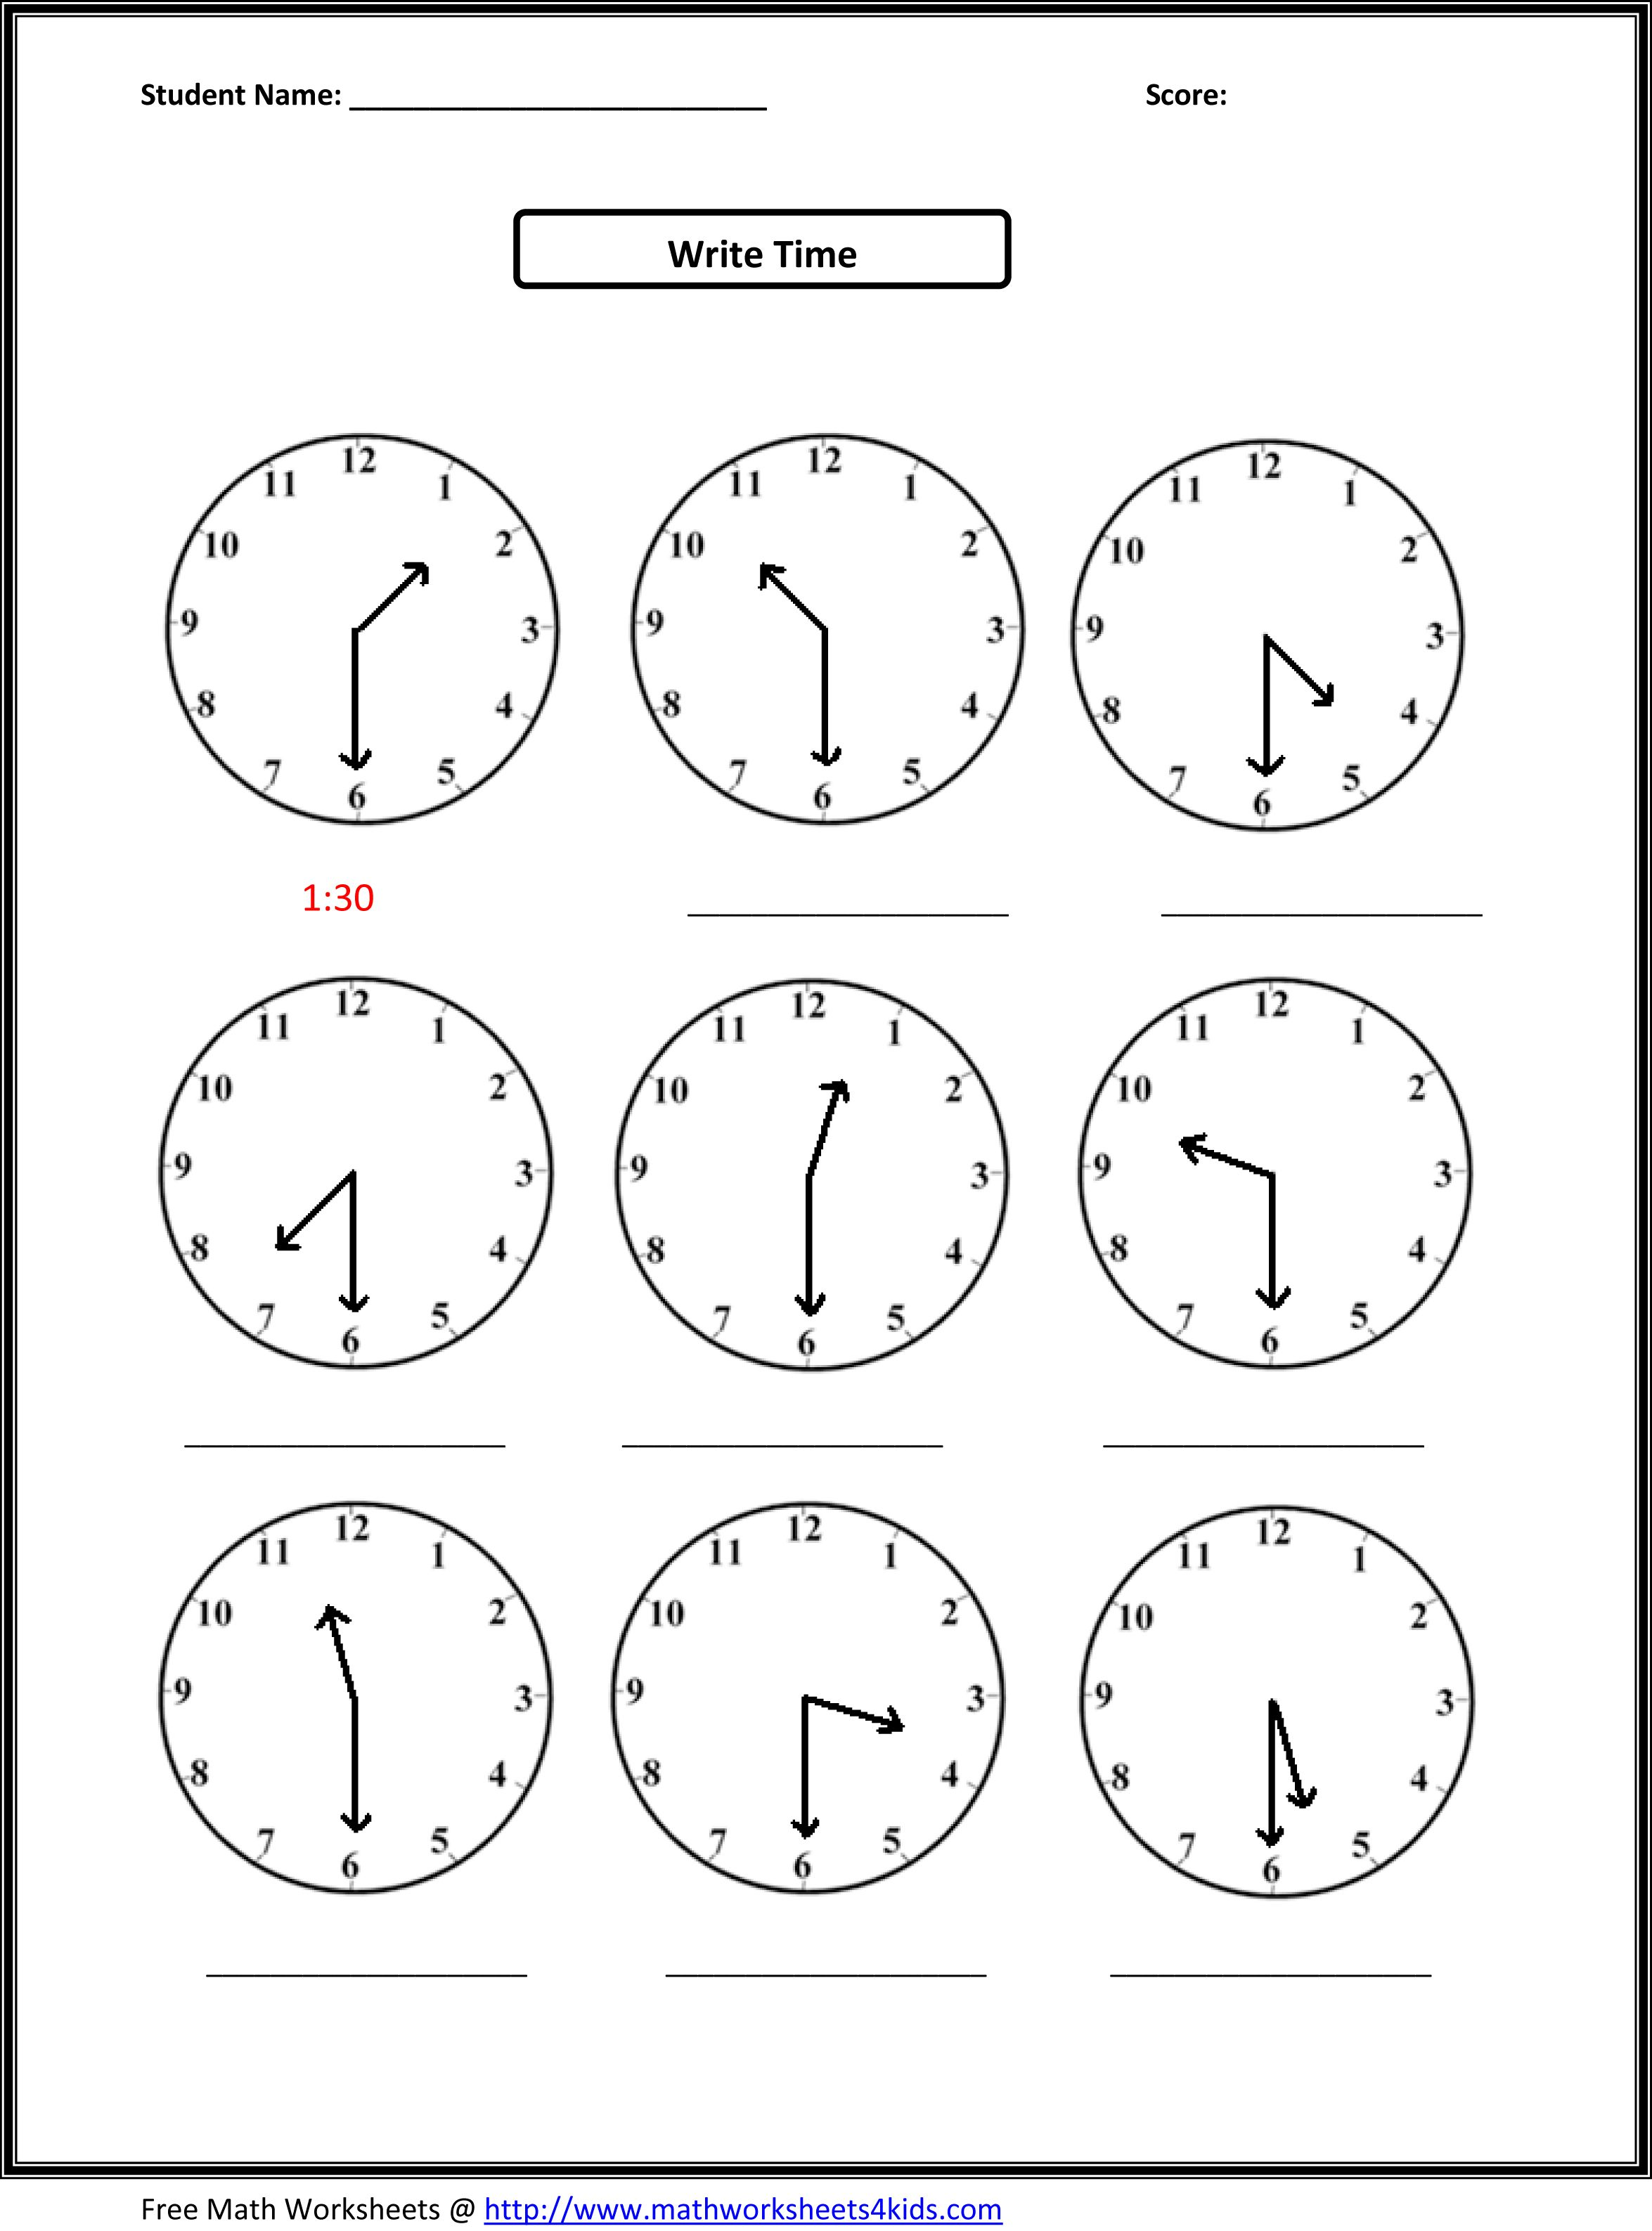 Weirdmailus  Marvelous Worksheet On Time For Grade   Reocurent With Lovely Free Printable Telling Time Worksheets Nd Grade  Reocurent With Appealing Grade  Math Practice Worksheets Also Free Rounding Decimals Worksheets In Addition Series Circuit Worksheets And Instruction Worksheets As Well As Personal Hygiene Worksheets Ks Additionally Math Activities Worksheets From Reocurentcom With Weirdmailus  Lovely Worksheet On Time For Grade   Reocurent With Appealing Free Printable Telling Time Worksheets Nd Grade  Reocurent And Marvelous Grade  Math Practice Worksheets Also Free Rounding Decimals Worksheets In Addition Series Circuit Worksheets From Reocurentcom